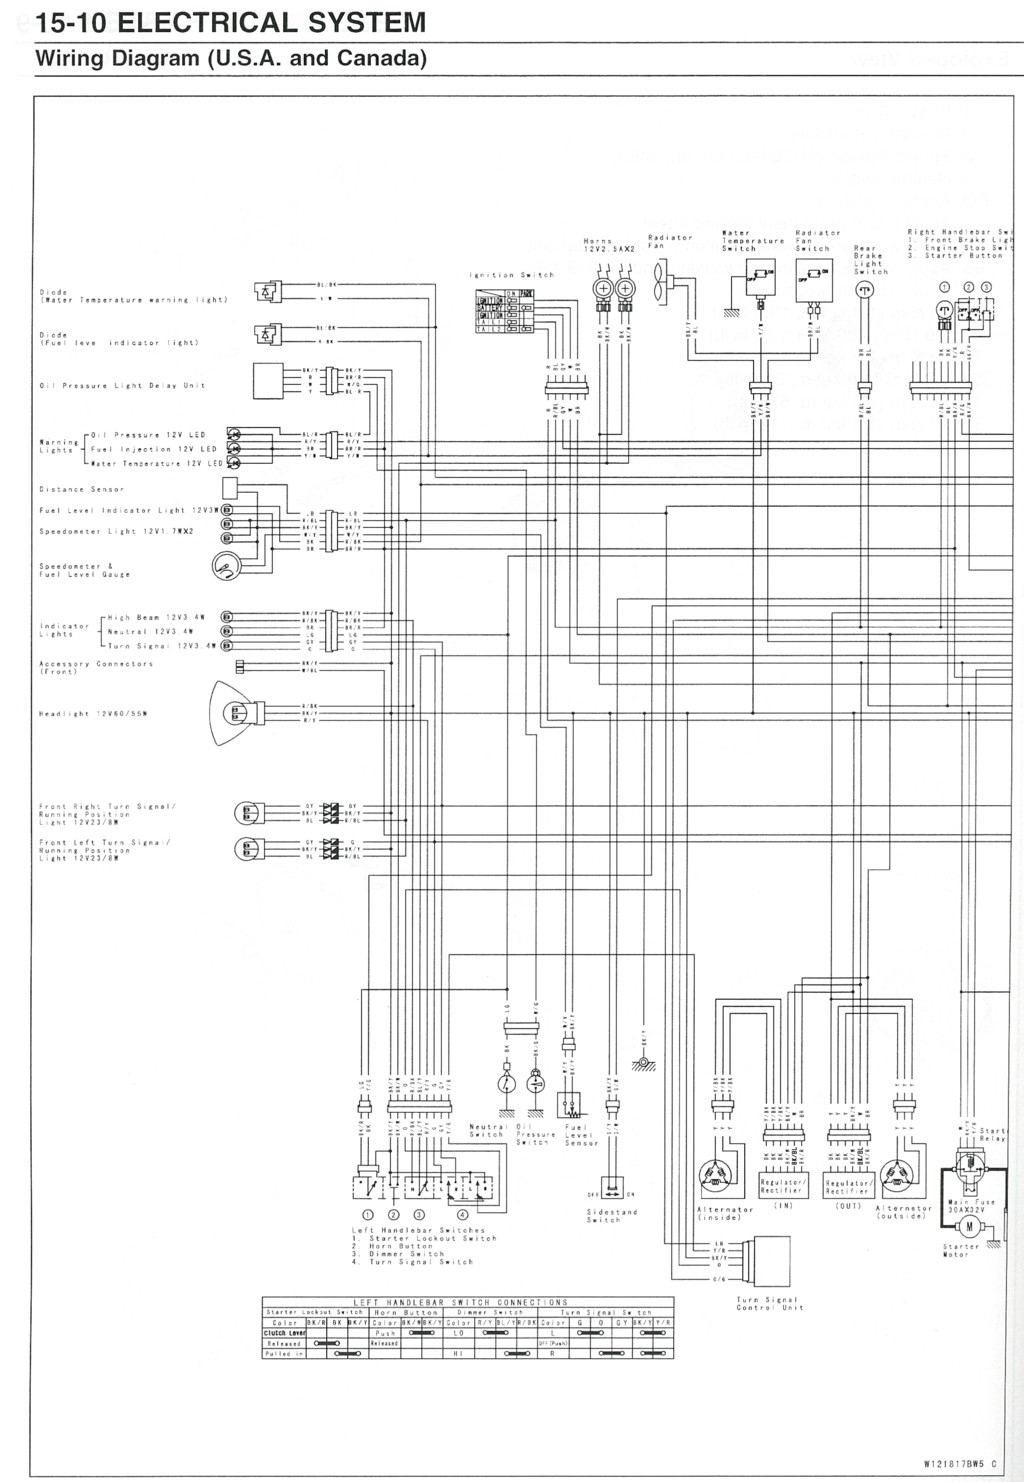 kawasaki wiring diagrams mercedes benz w202 vn800 vulcan 800 diagram electrical auto